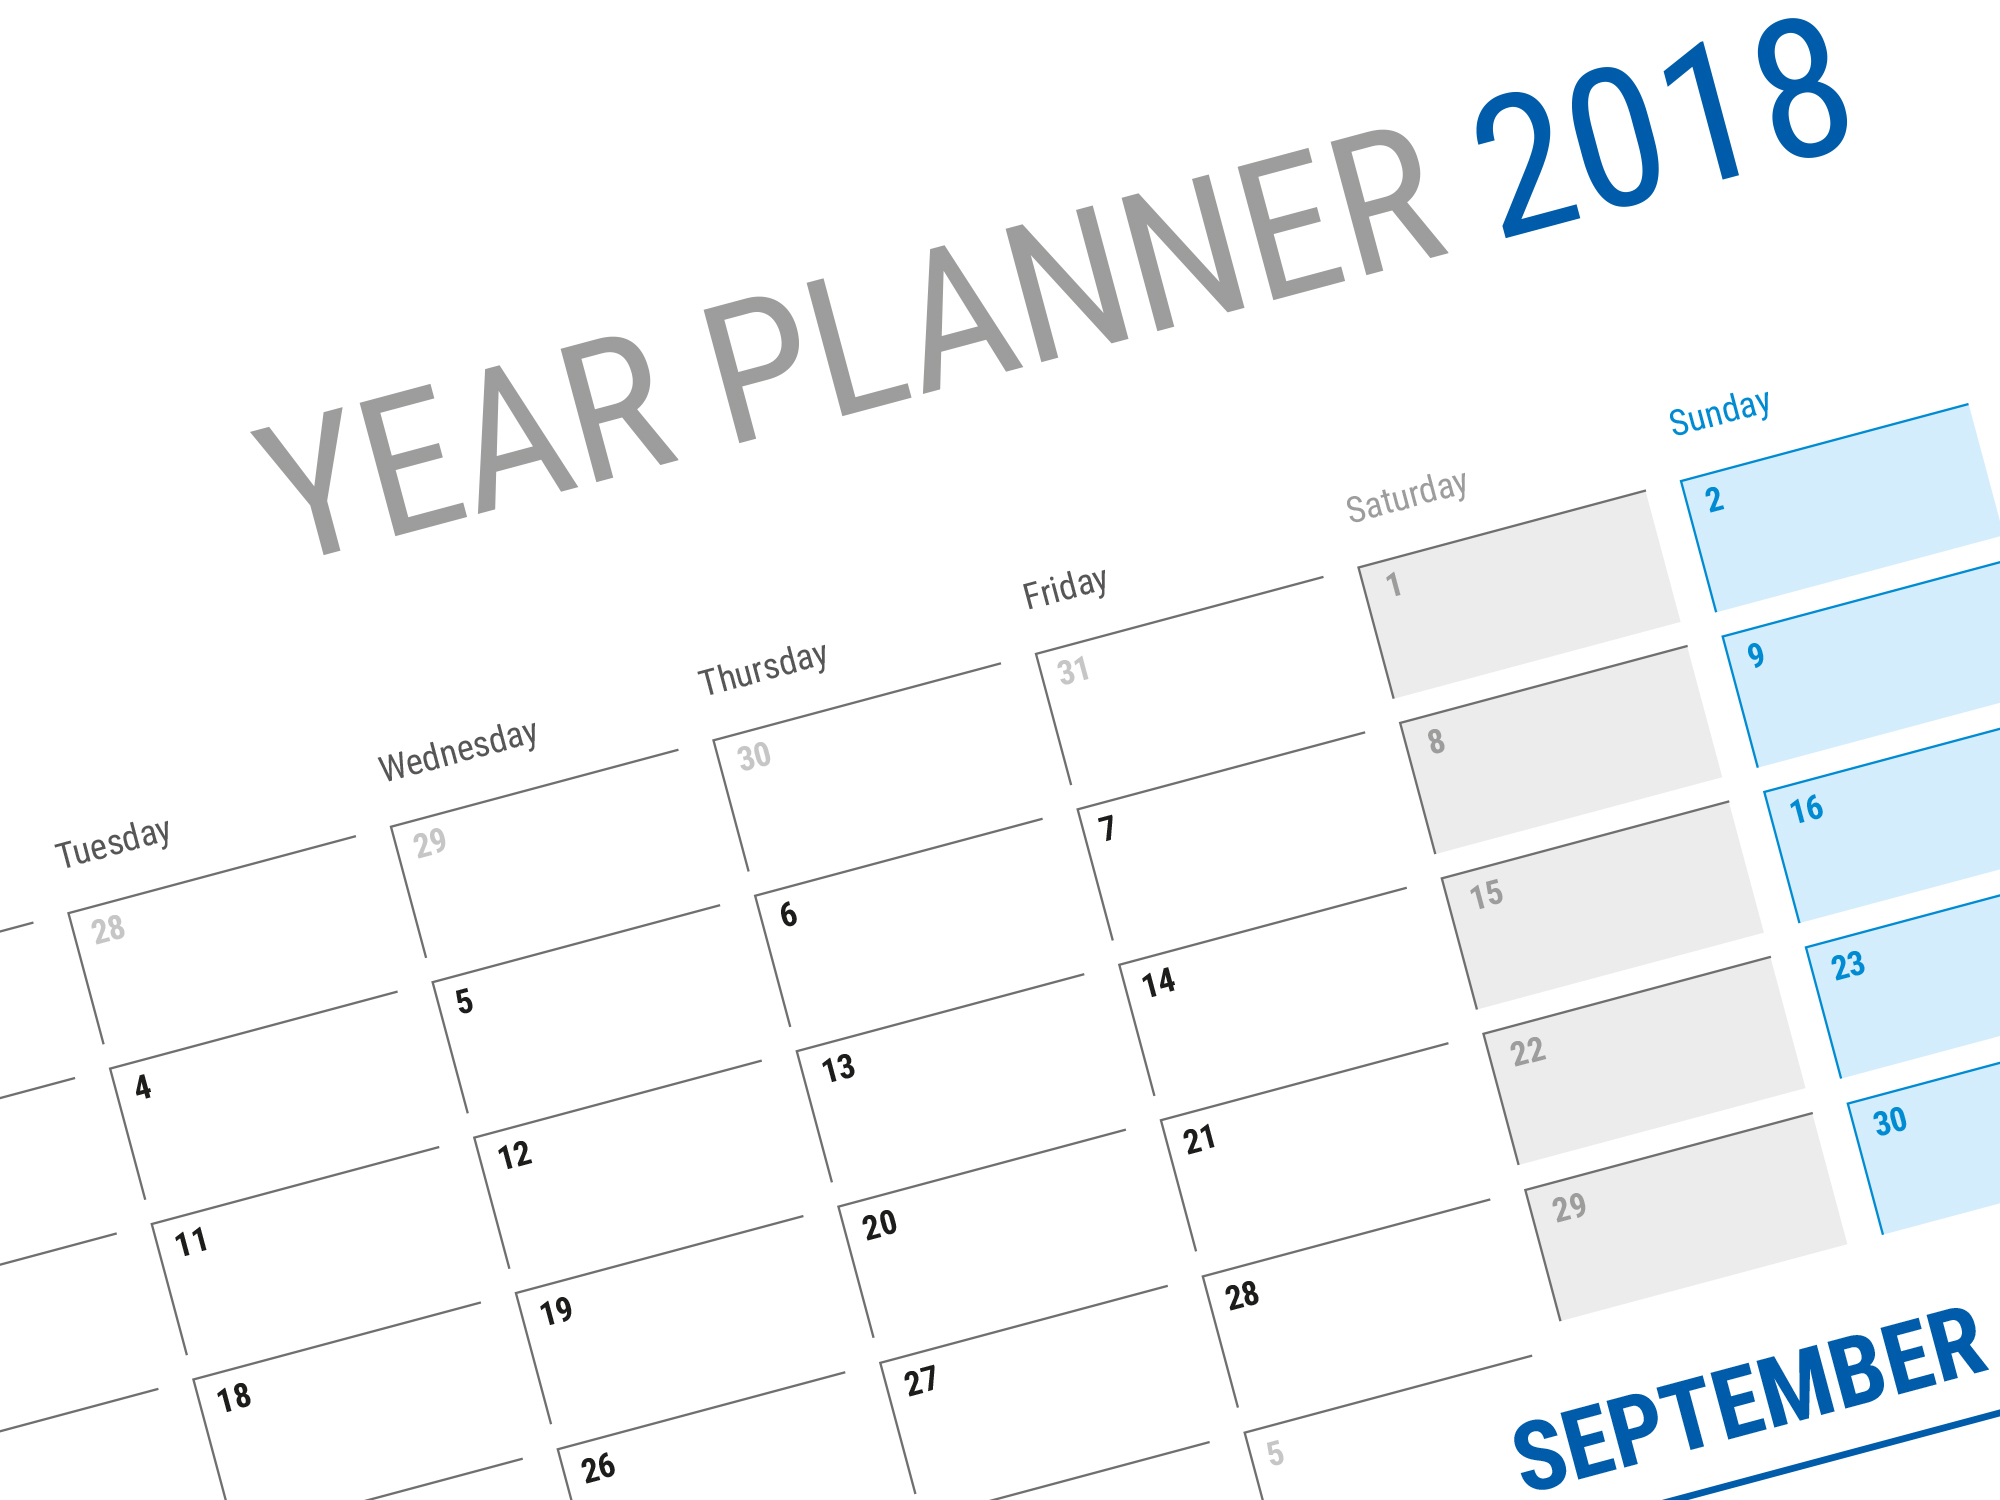 Calendar Planner Sample : Large horizontal blank calendar template for year